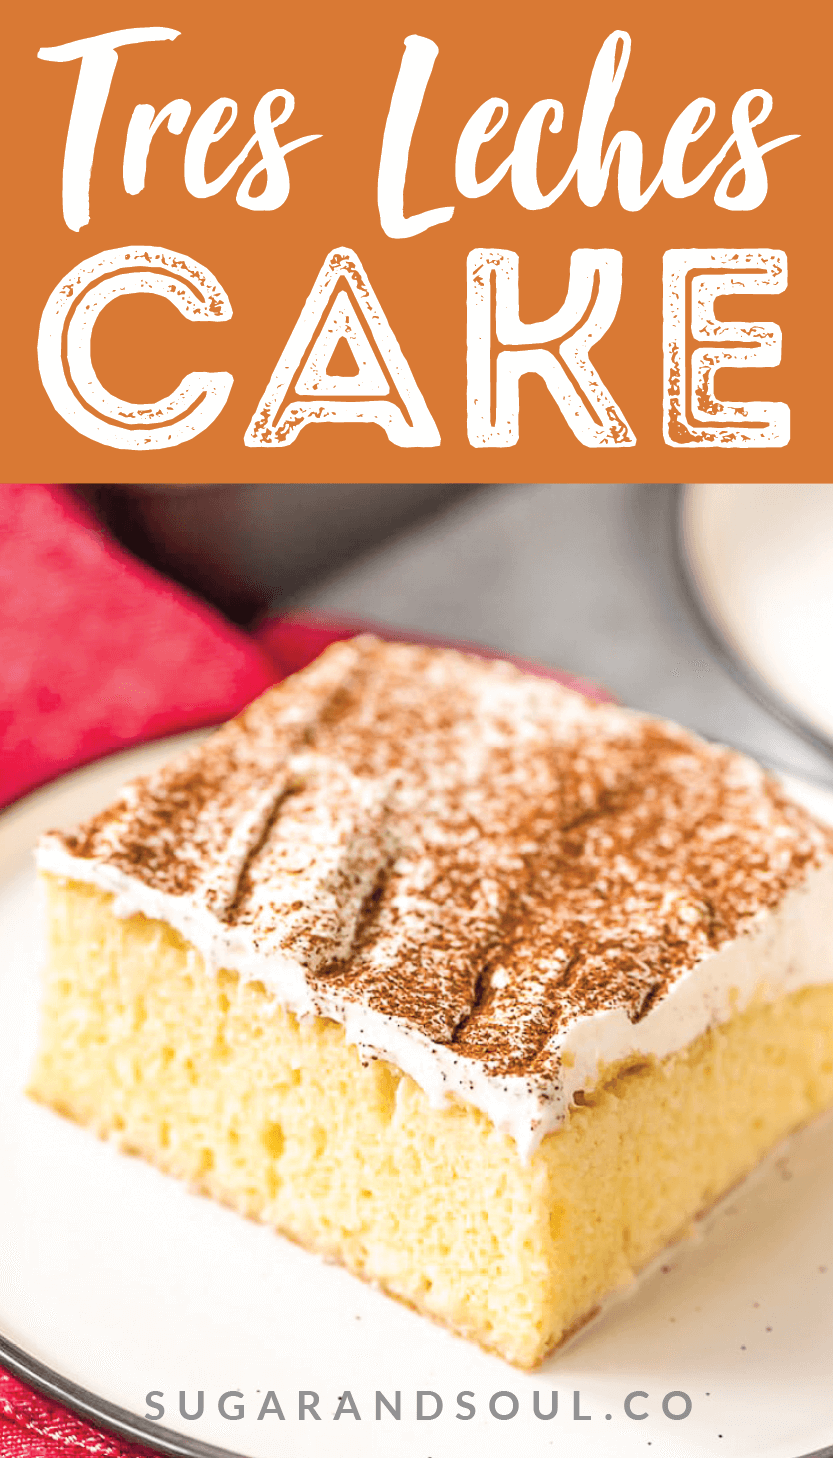 This classic Tres Leches Cake is the pride and joy of Latin America, an utterly delicious in its simplicity. A light vanilla sponge cake issoaked with a mixture of three milks, then topped with a thick layer of whipped cream and a sprinkle of cinnamon.